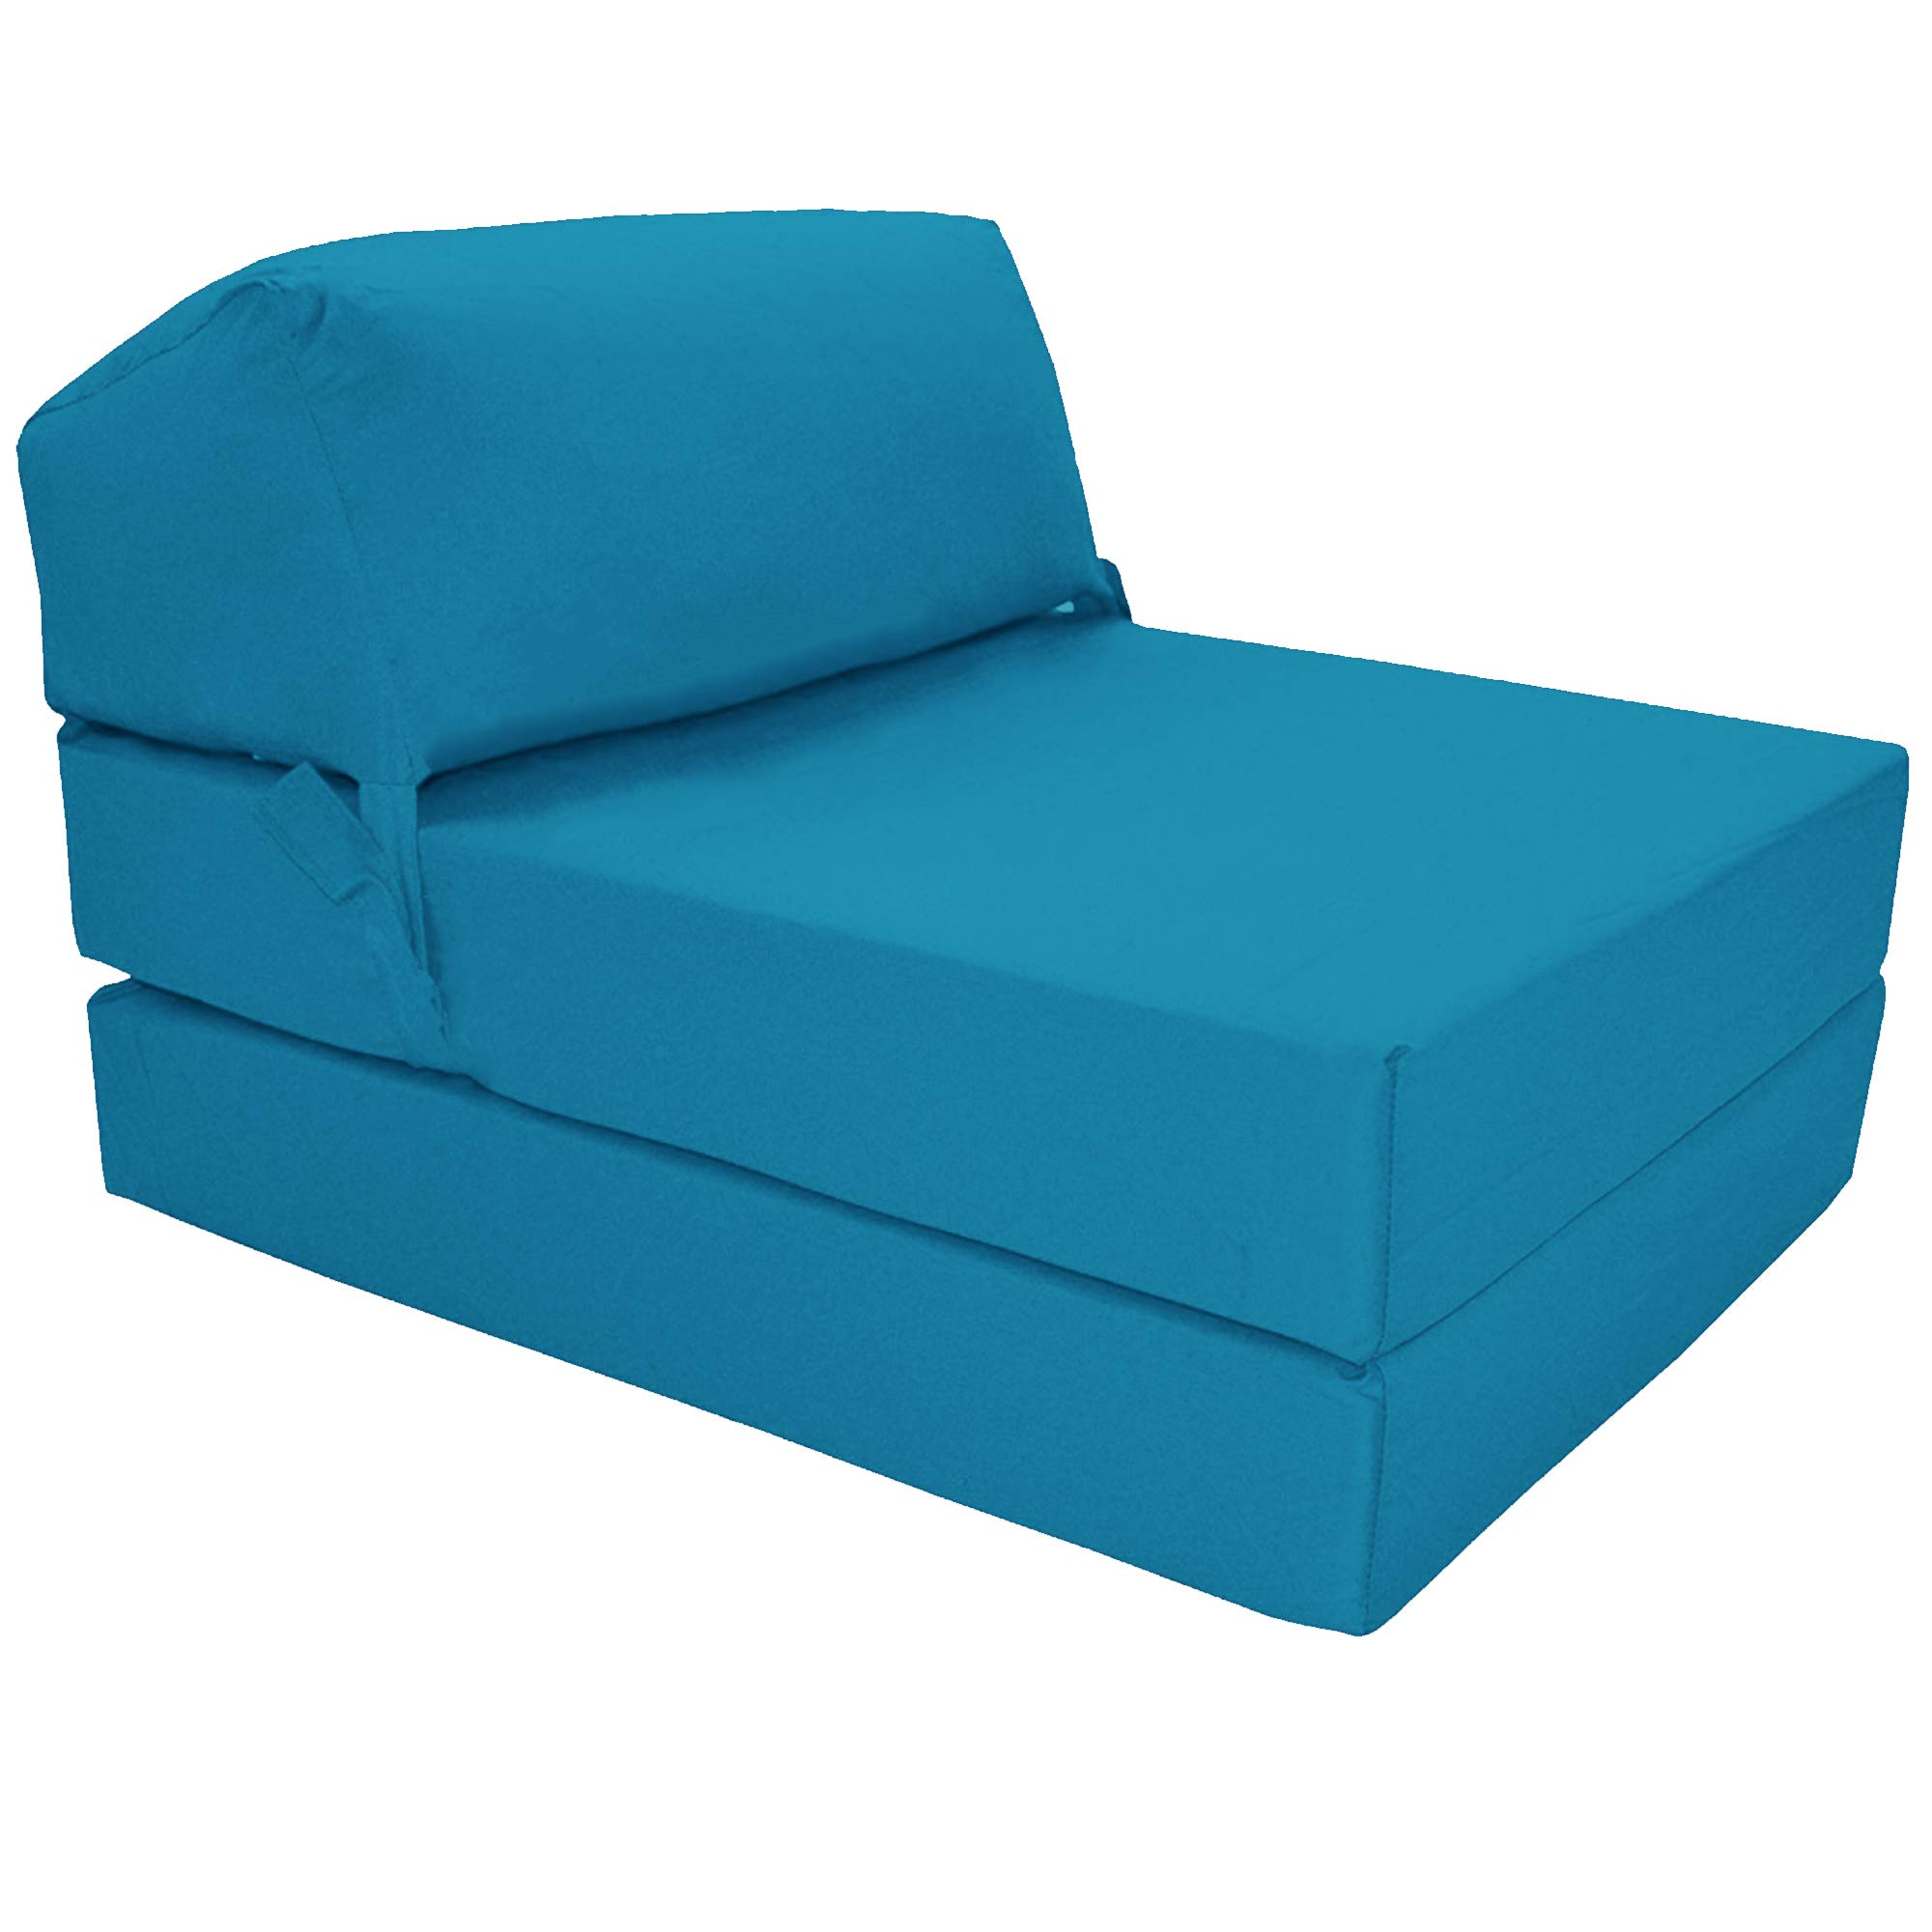 Gilda | Futon Z Chair bed (Jazz Cushion) Outland - Single Clean Coated Polyester  sc 1 st  Amazon.co.uk & Foam Chair Bed: Amazon.co.uk